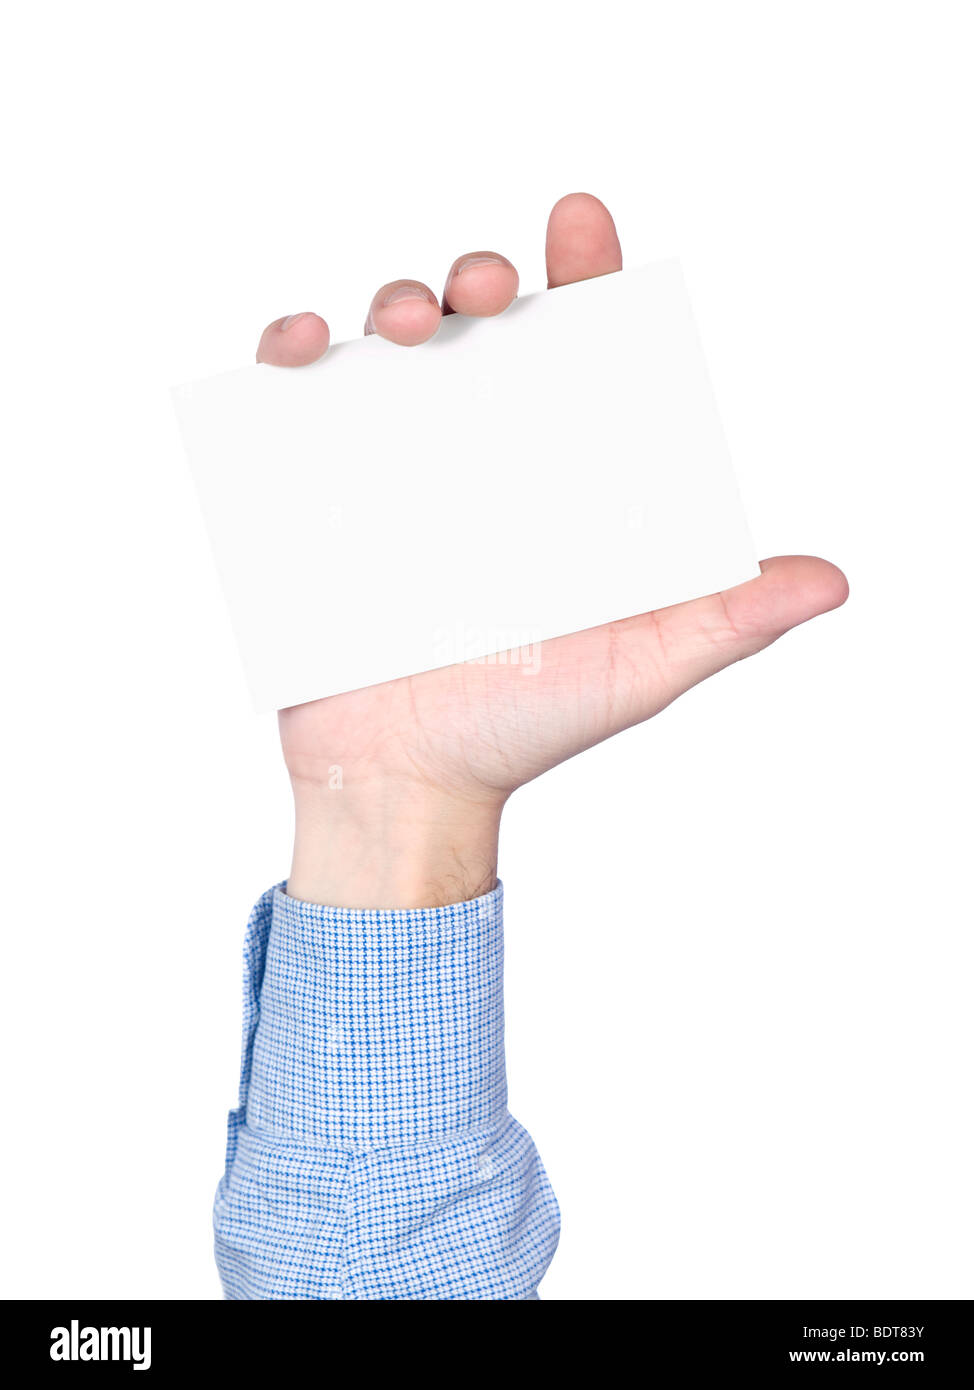 Blank card in human hand, isolated on white. - Stock Image